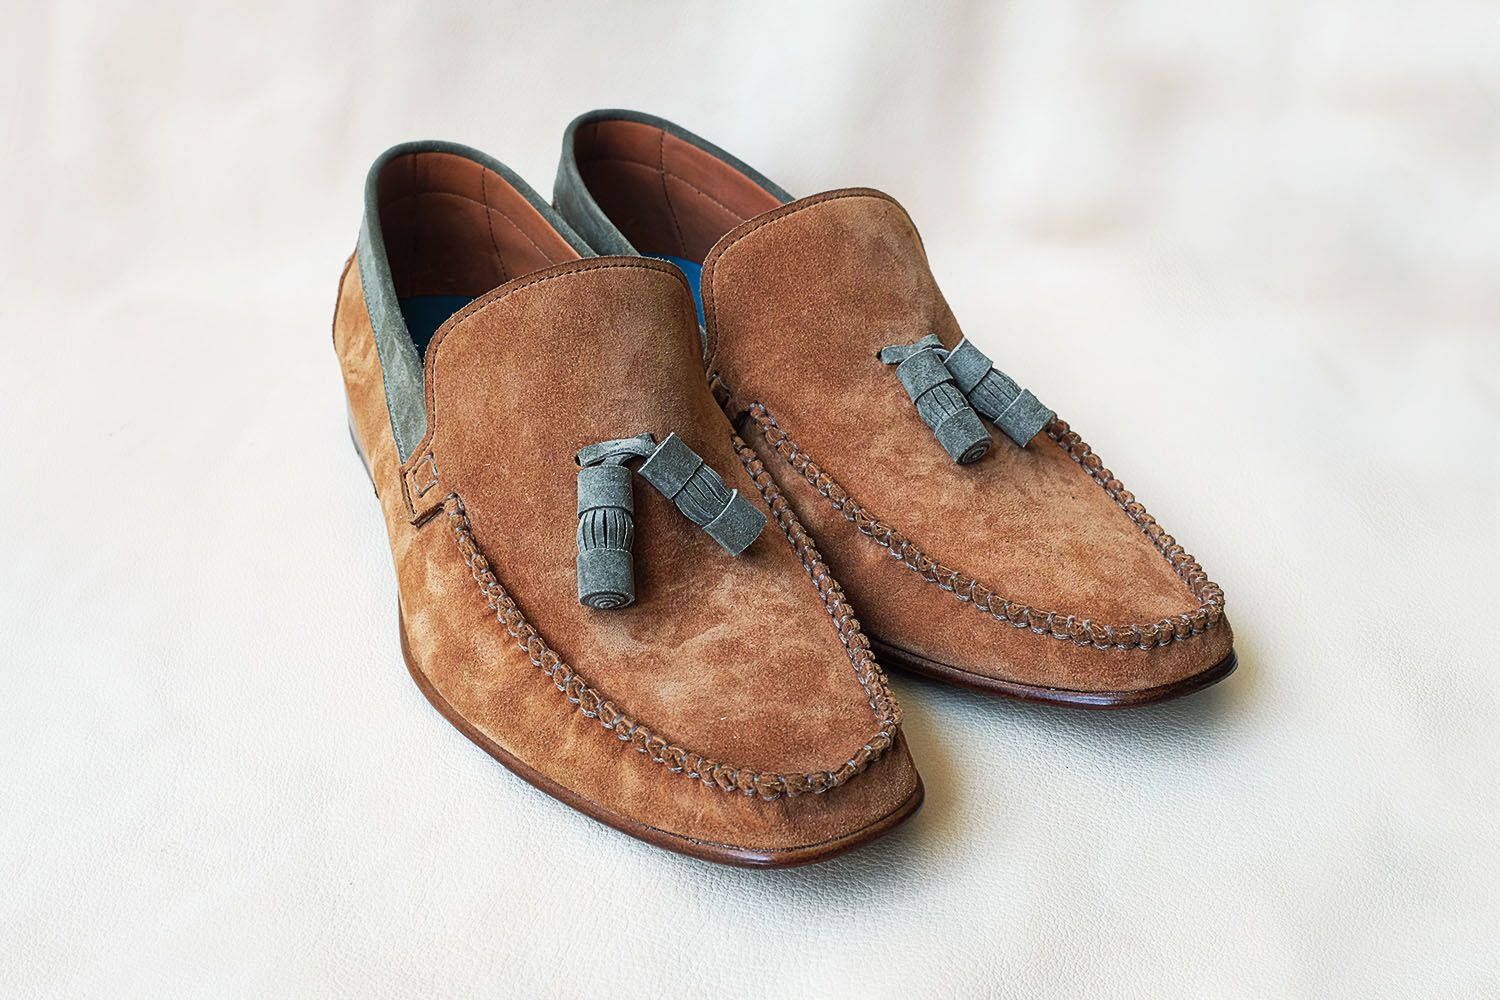 Dominique Saint Paul Boxer suede driving shoes with tassels by special request.